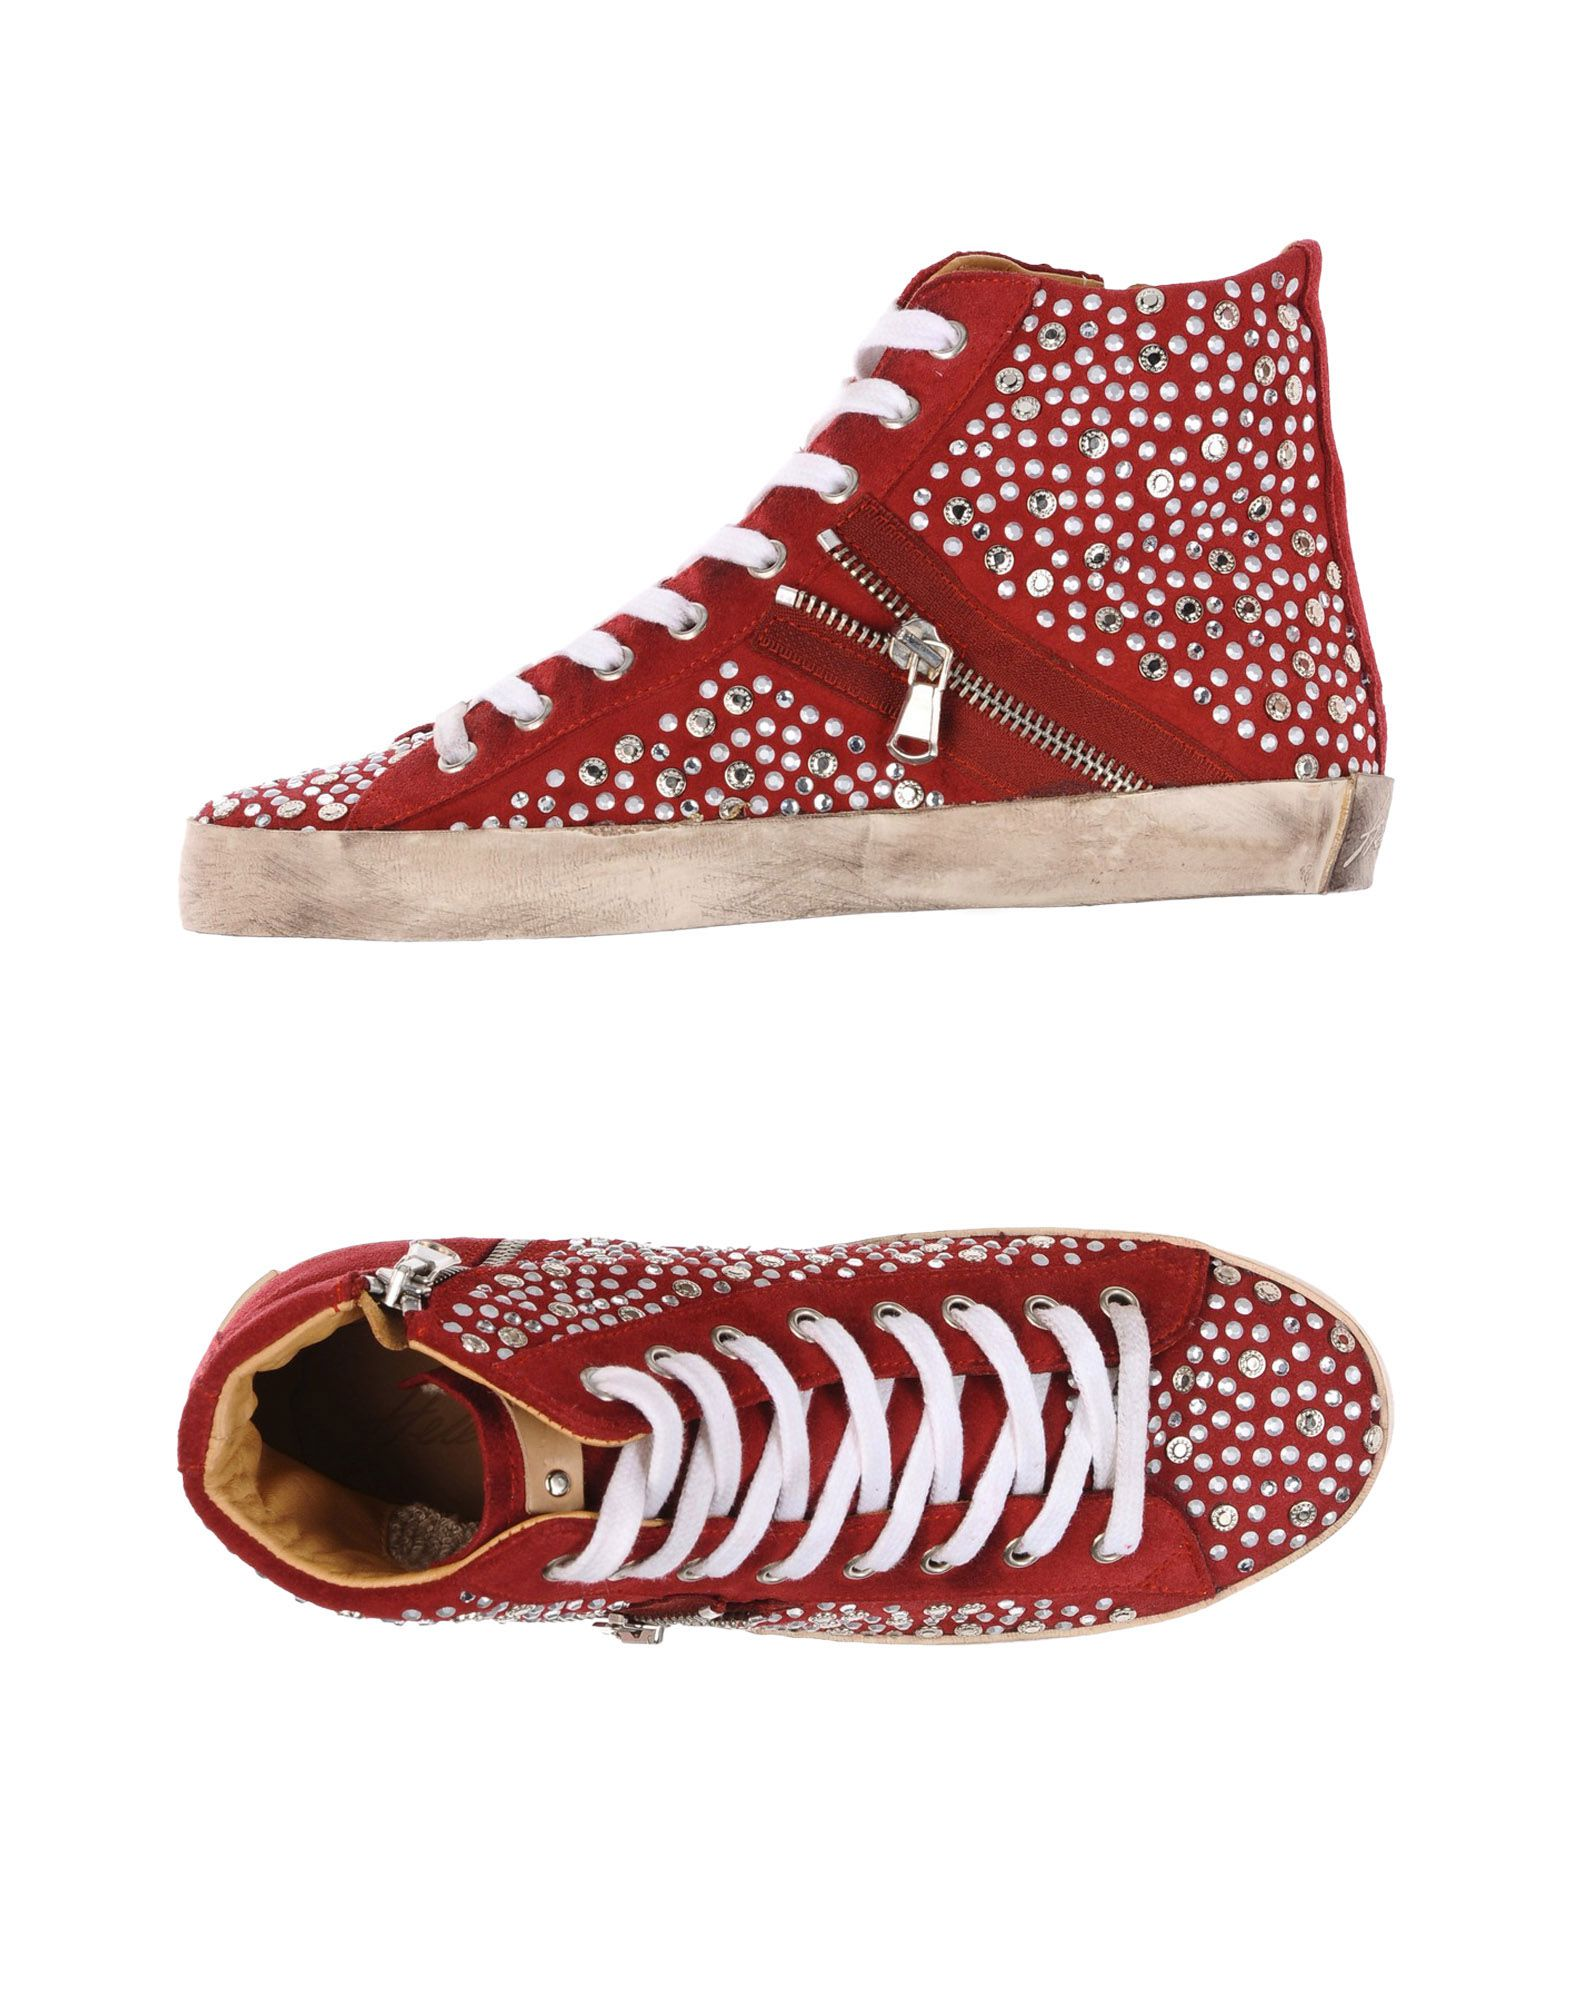 Baskets Helen Yoi Femme - Baskets Helen Yoi Pourpre Chaussures casual sauvages